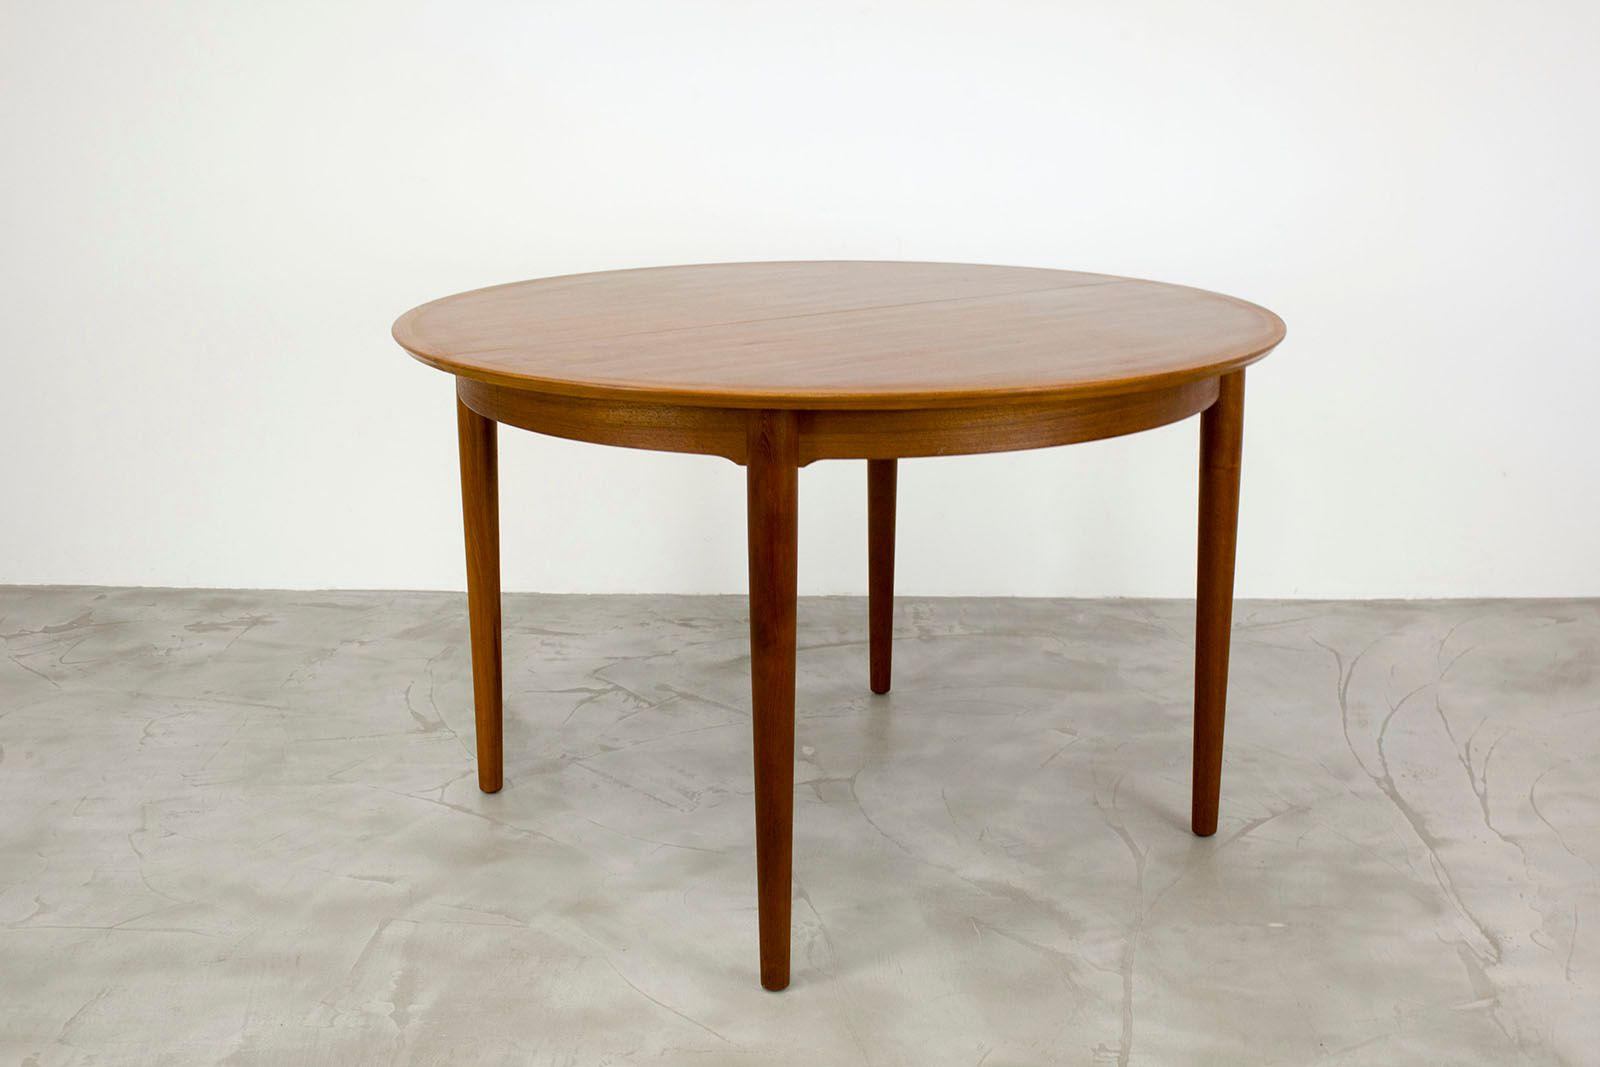 Danish Teak Dining Table With Extension Leaf By Arne